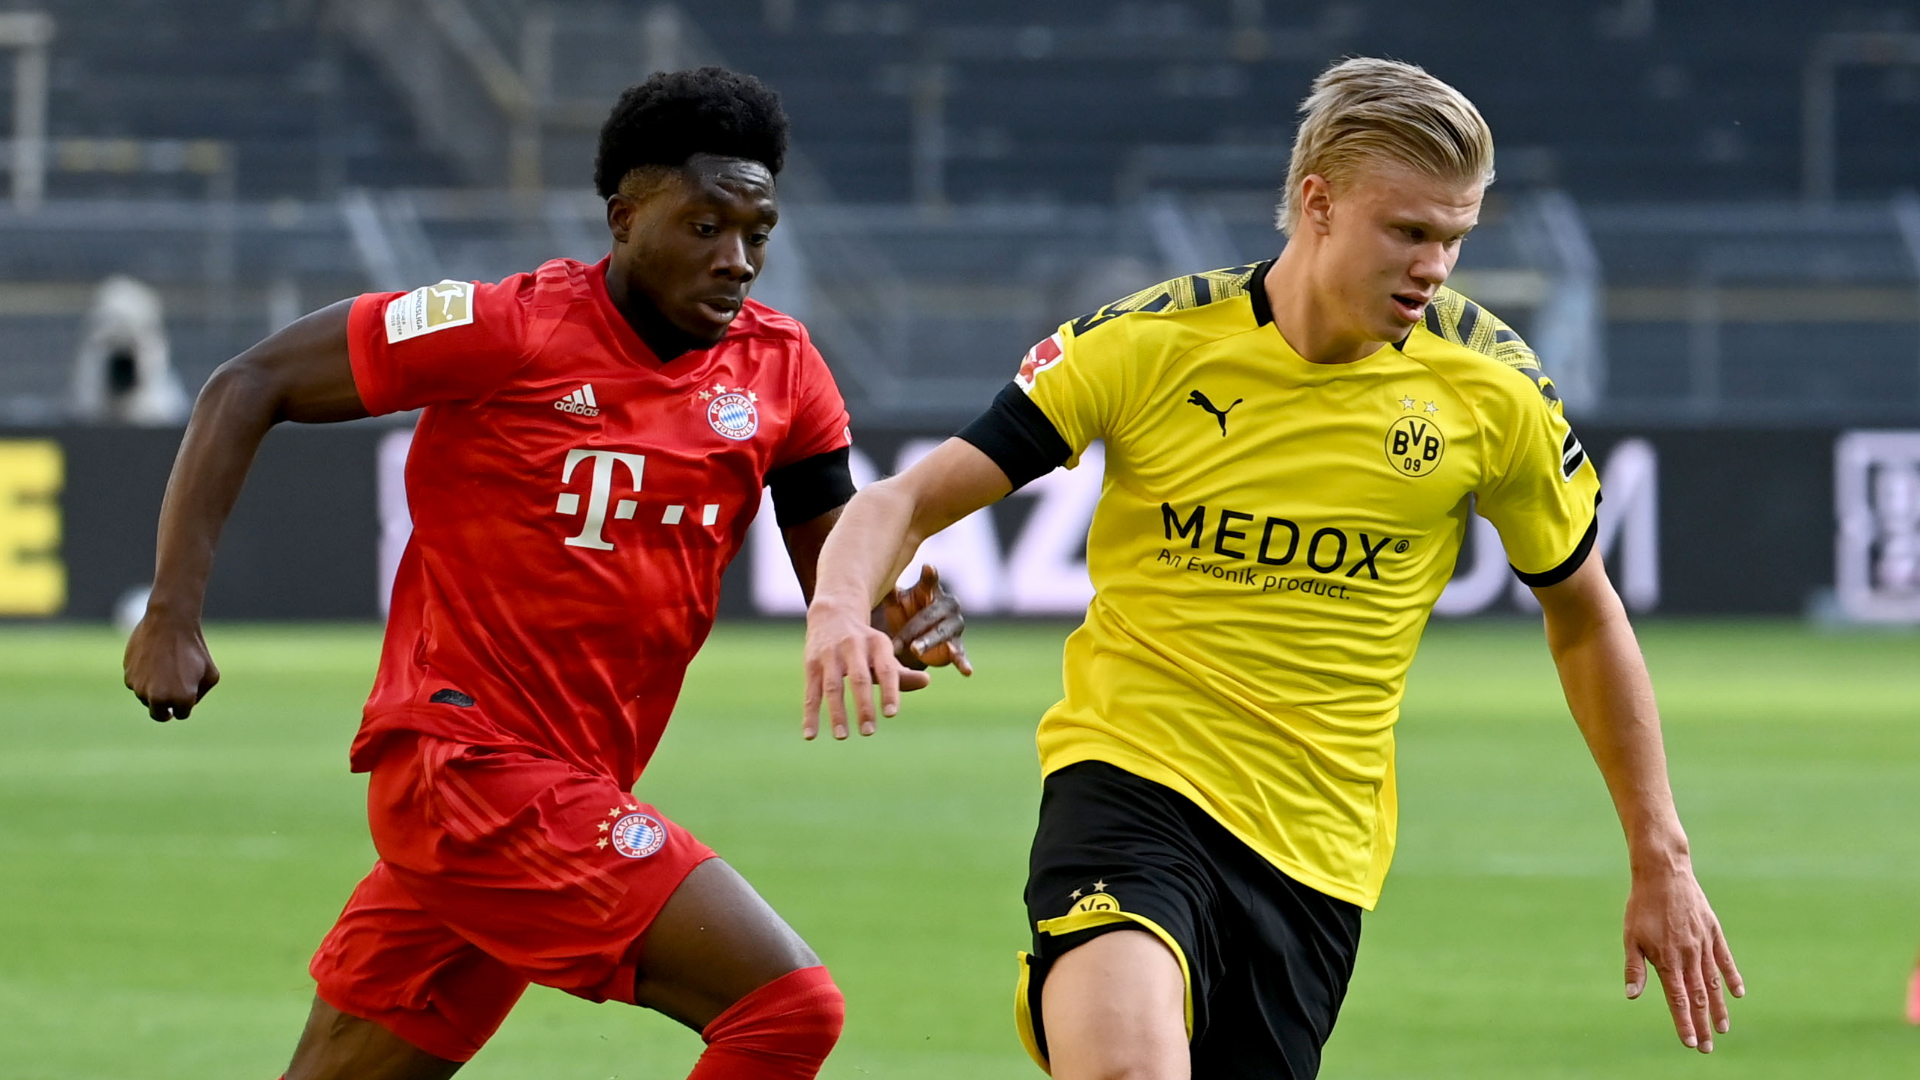 Alphonso Davies is fast as f*ck!' - Bayern star's pace amazes in ...